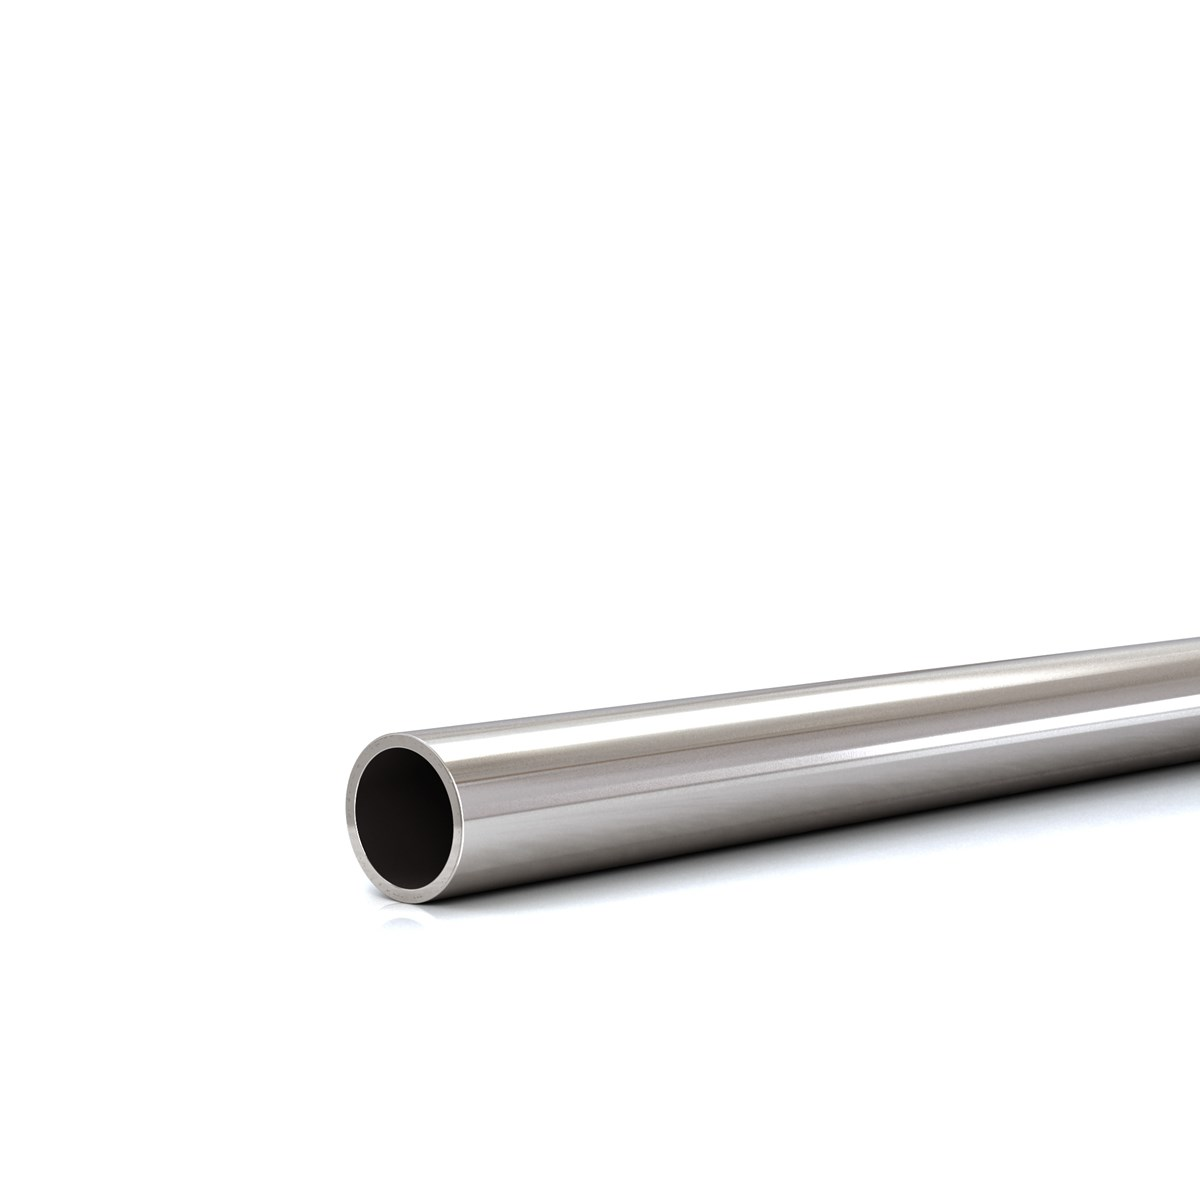 Titanium tubing — Sandvik Materials Technology